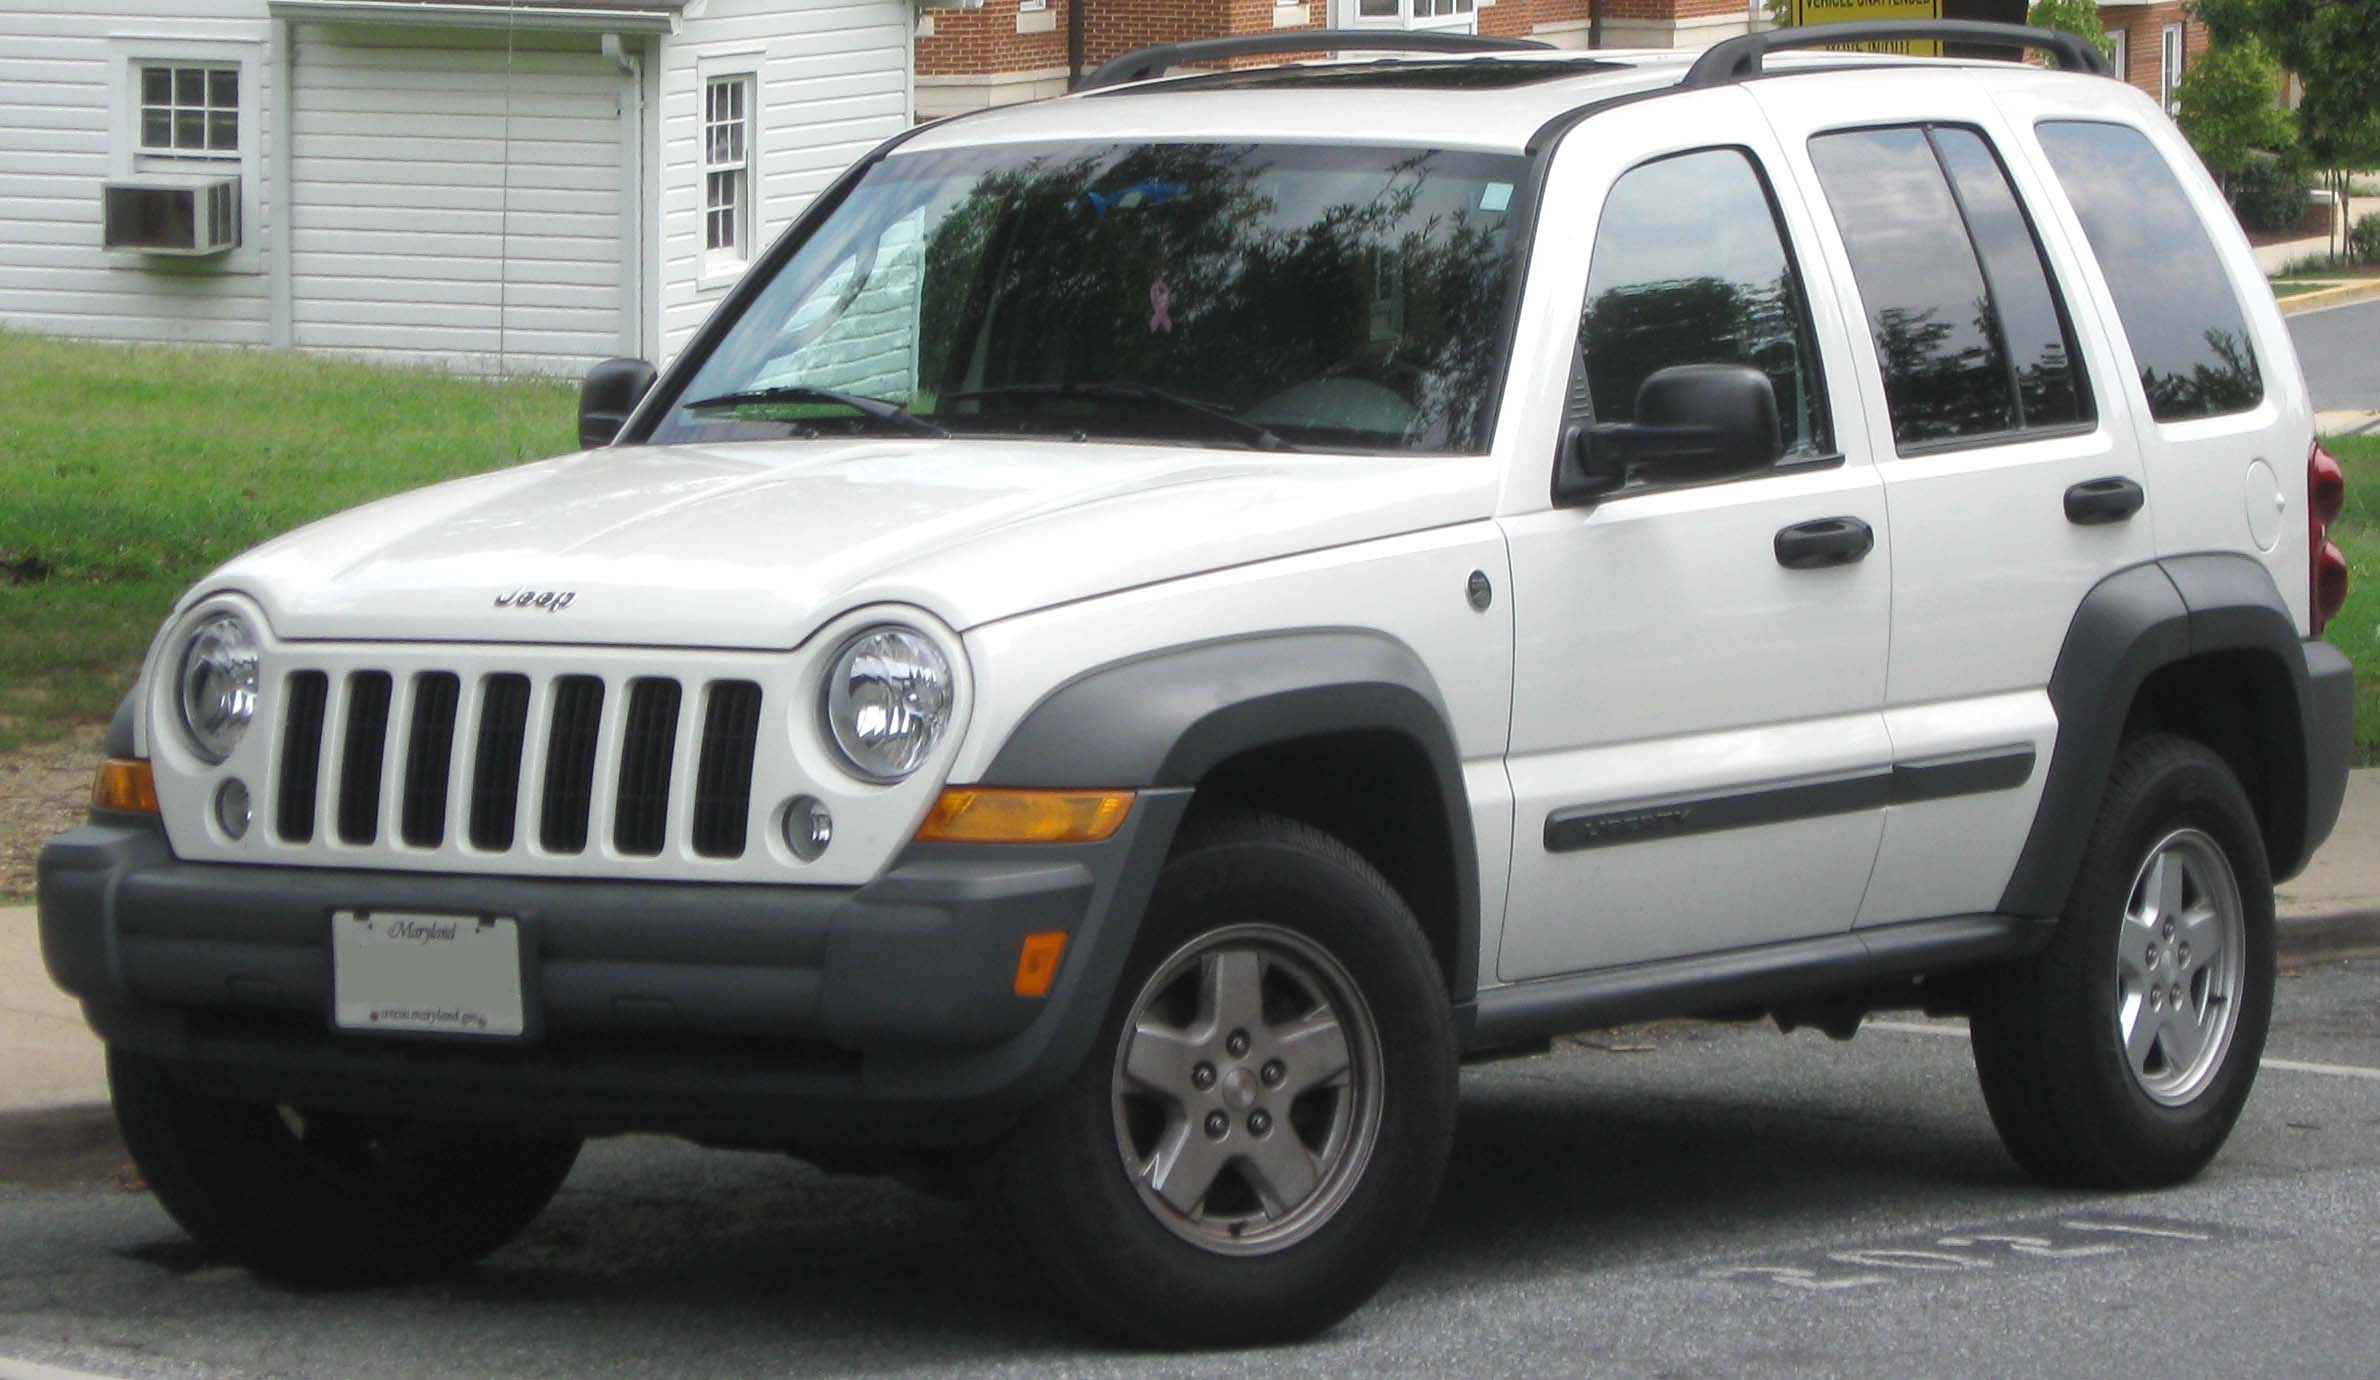 2005 Jeep Liberty Information And Photos Zombiedrive 3 7 Engine Diagram 13